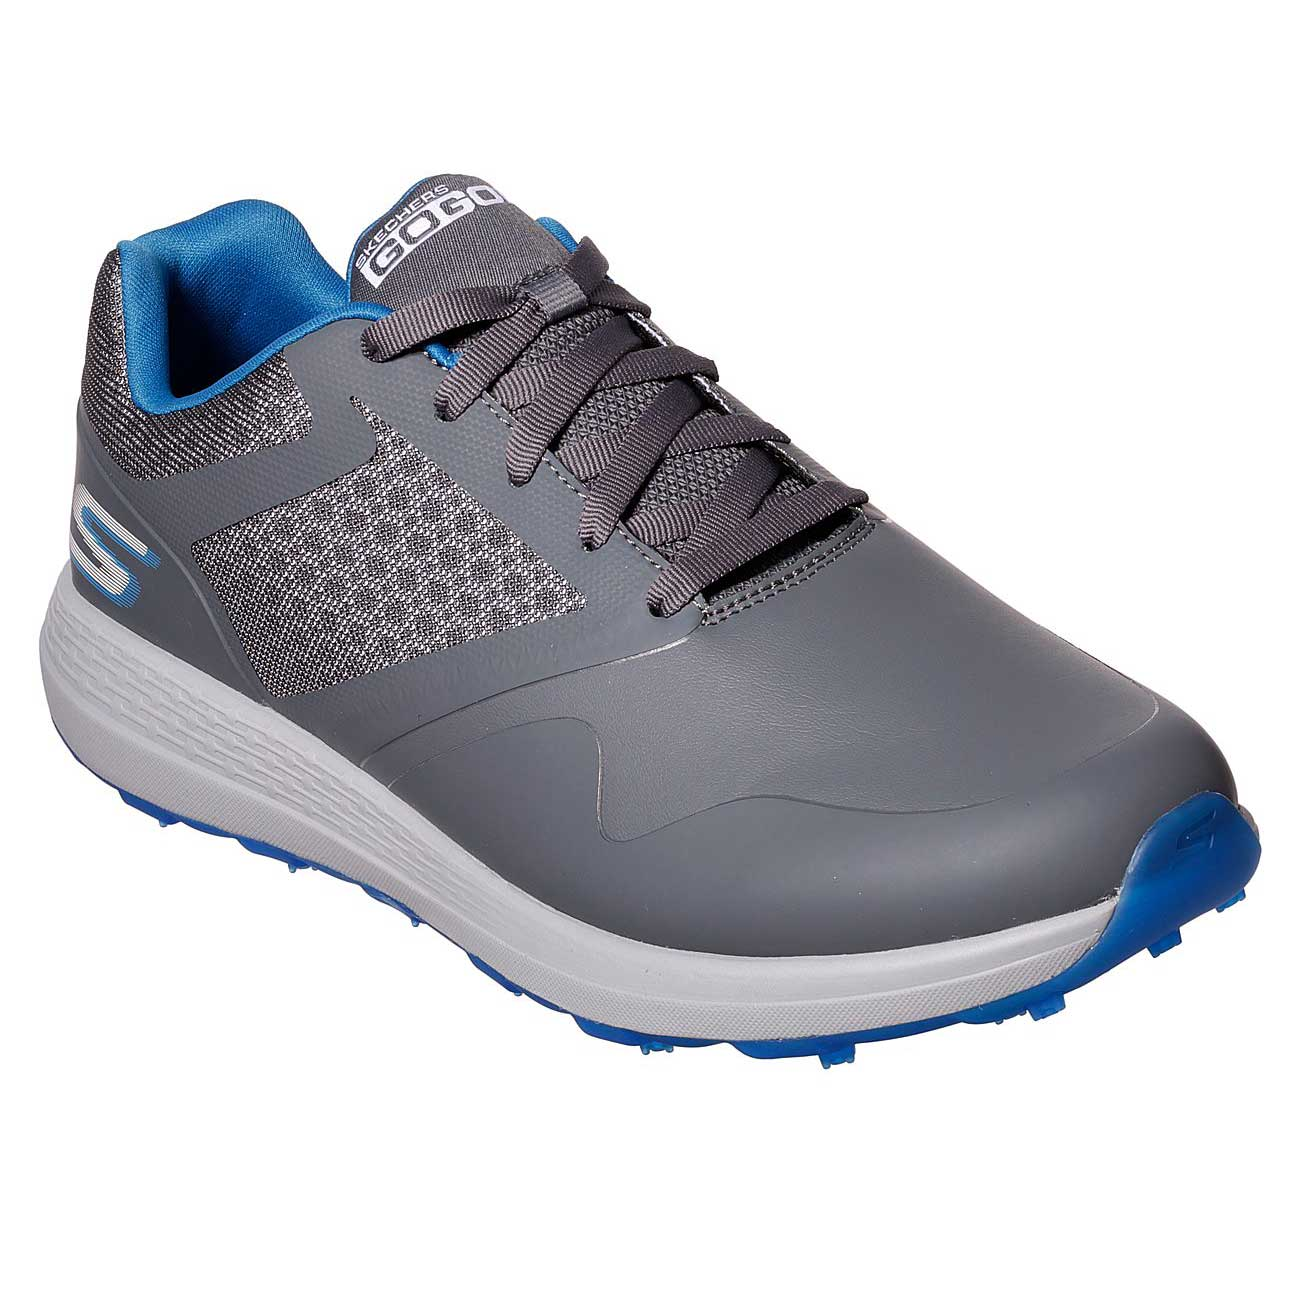 Skechers Men's Go Golf Max Grey/Blue Golf Shoe